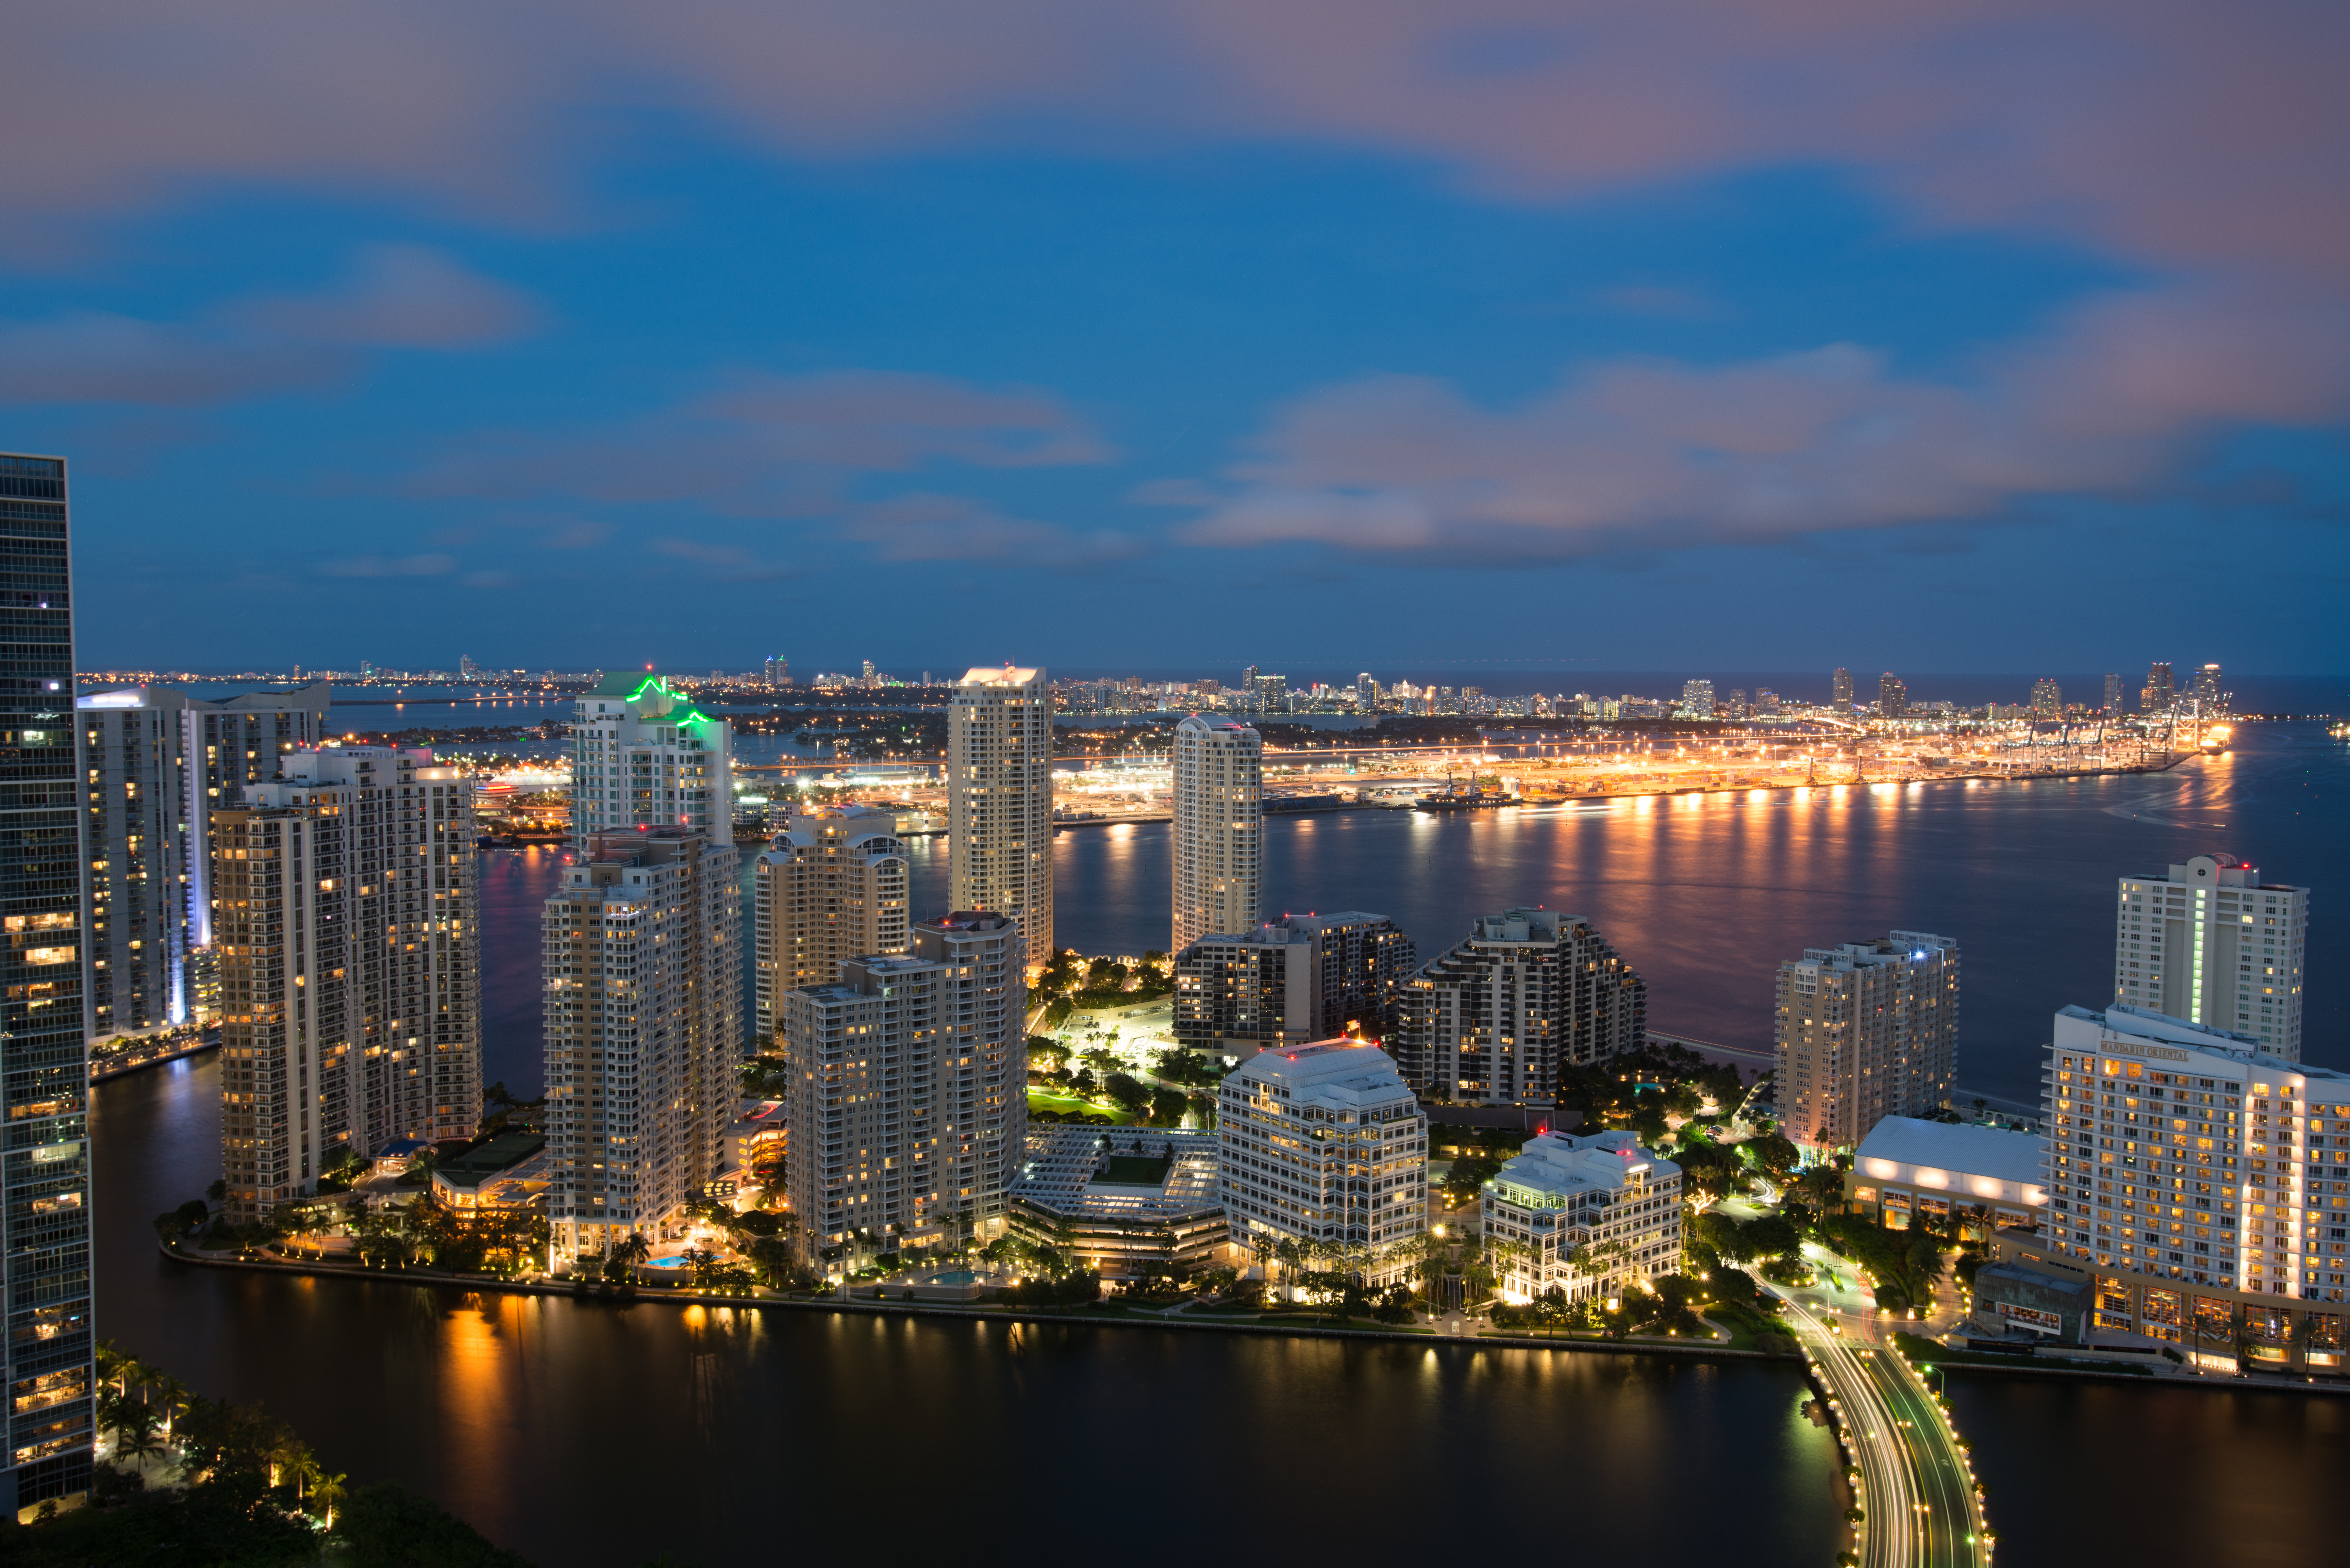 51647 download wallpaper Skyscrapers, Night City, City Lights, Miami, Architecture, Cities screensavers and pictures for free